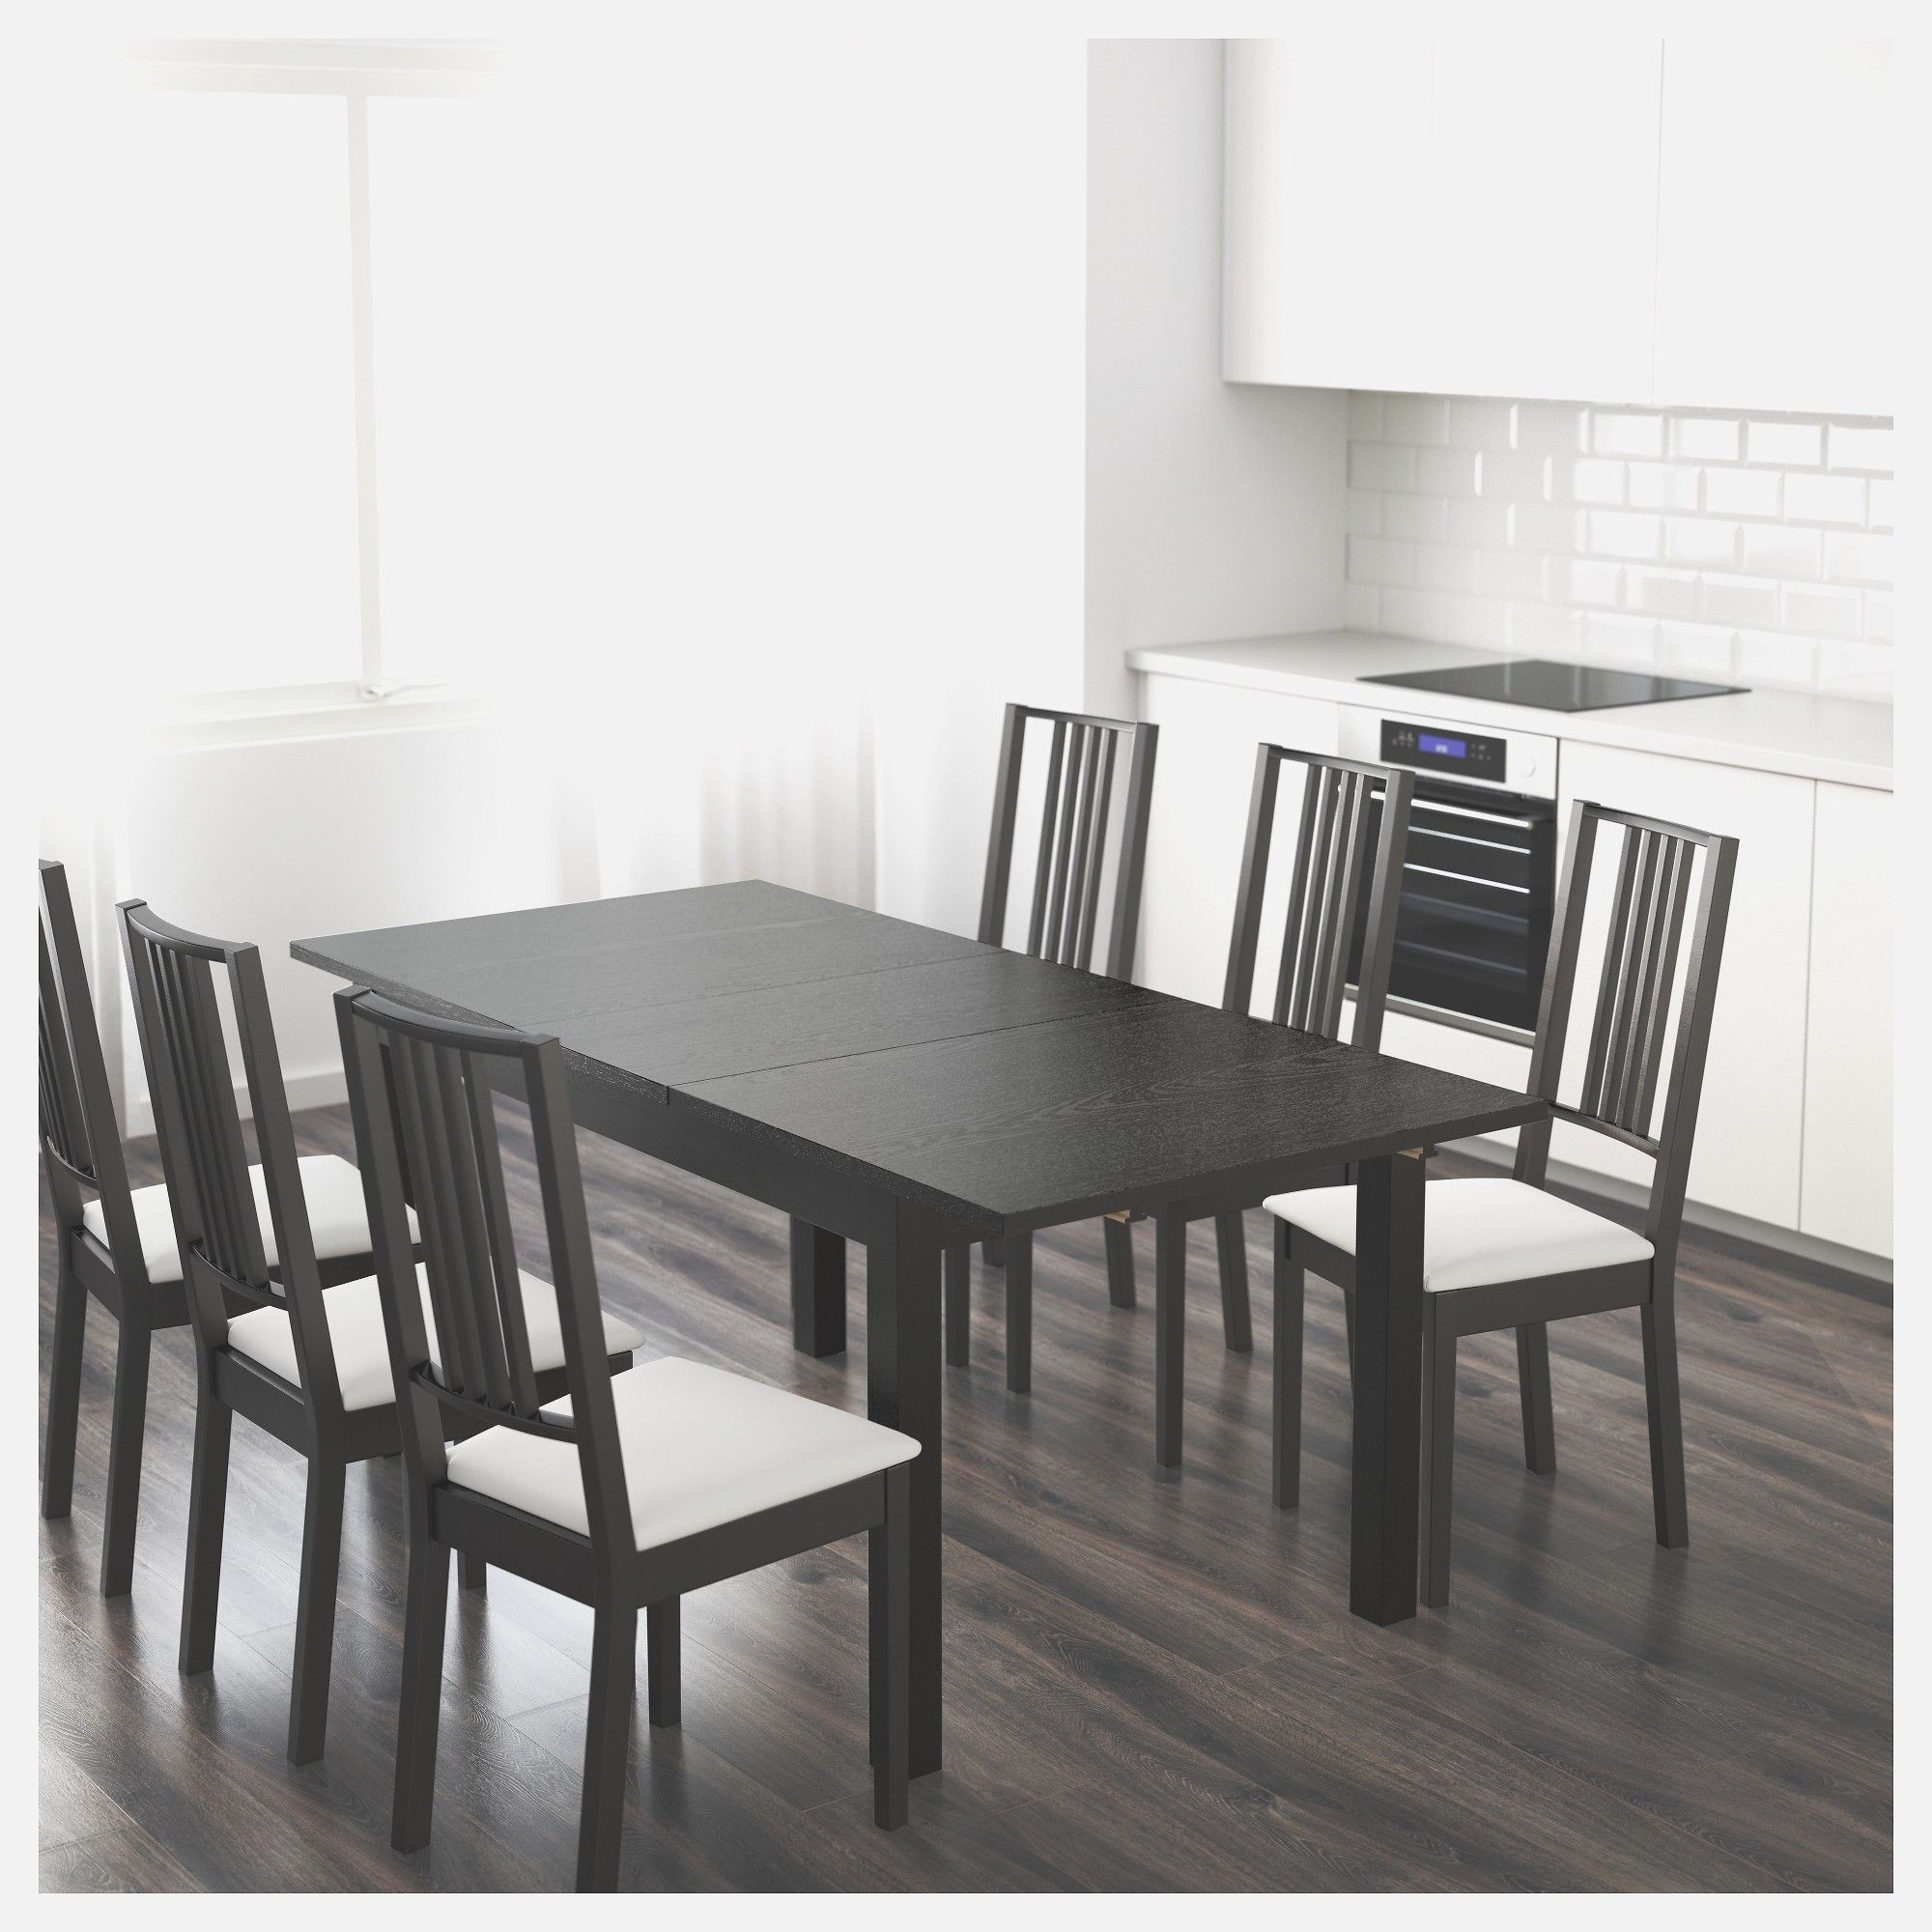 Ikea Kitchen Tables and Chairs - ikea dining table and, ikea dining ...